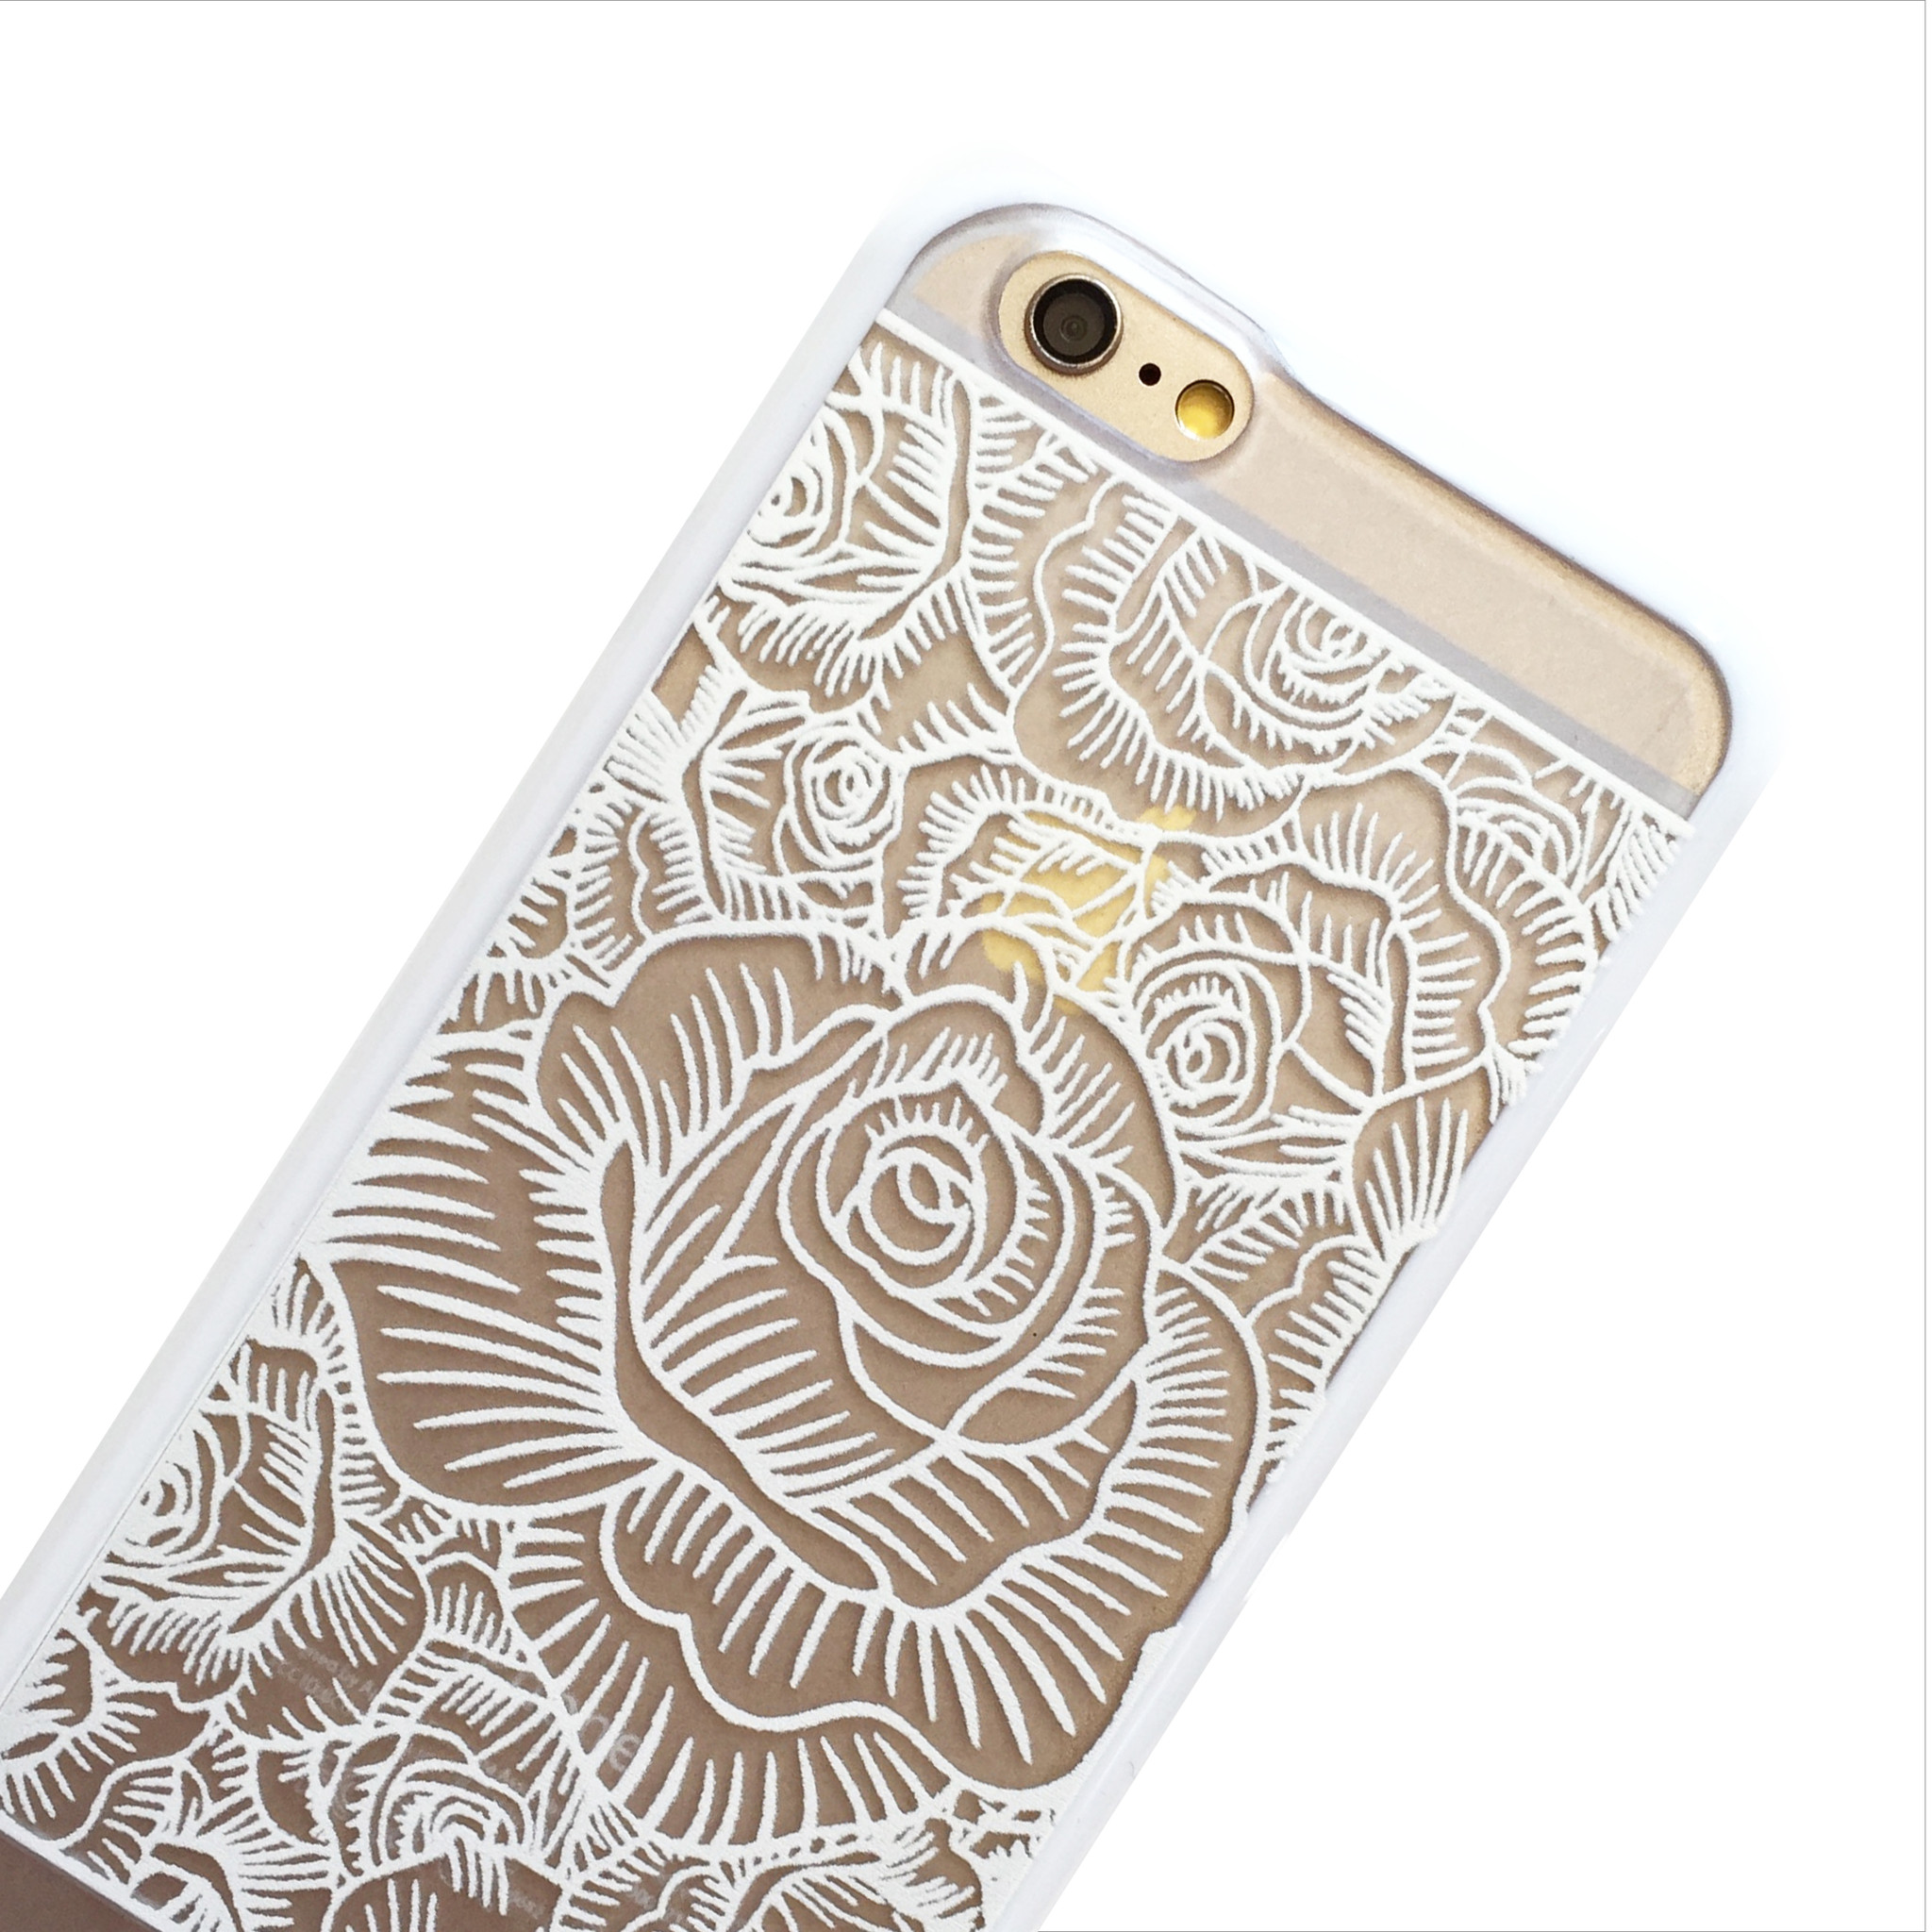 2048x2048 White Blooming Roses Iphone Case